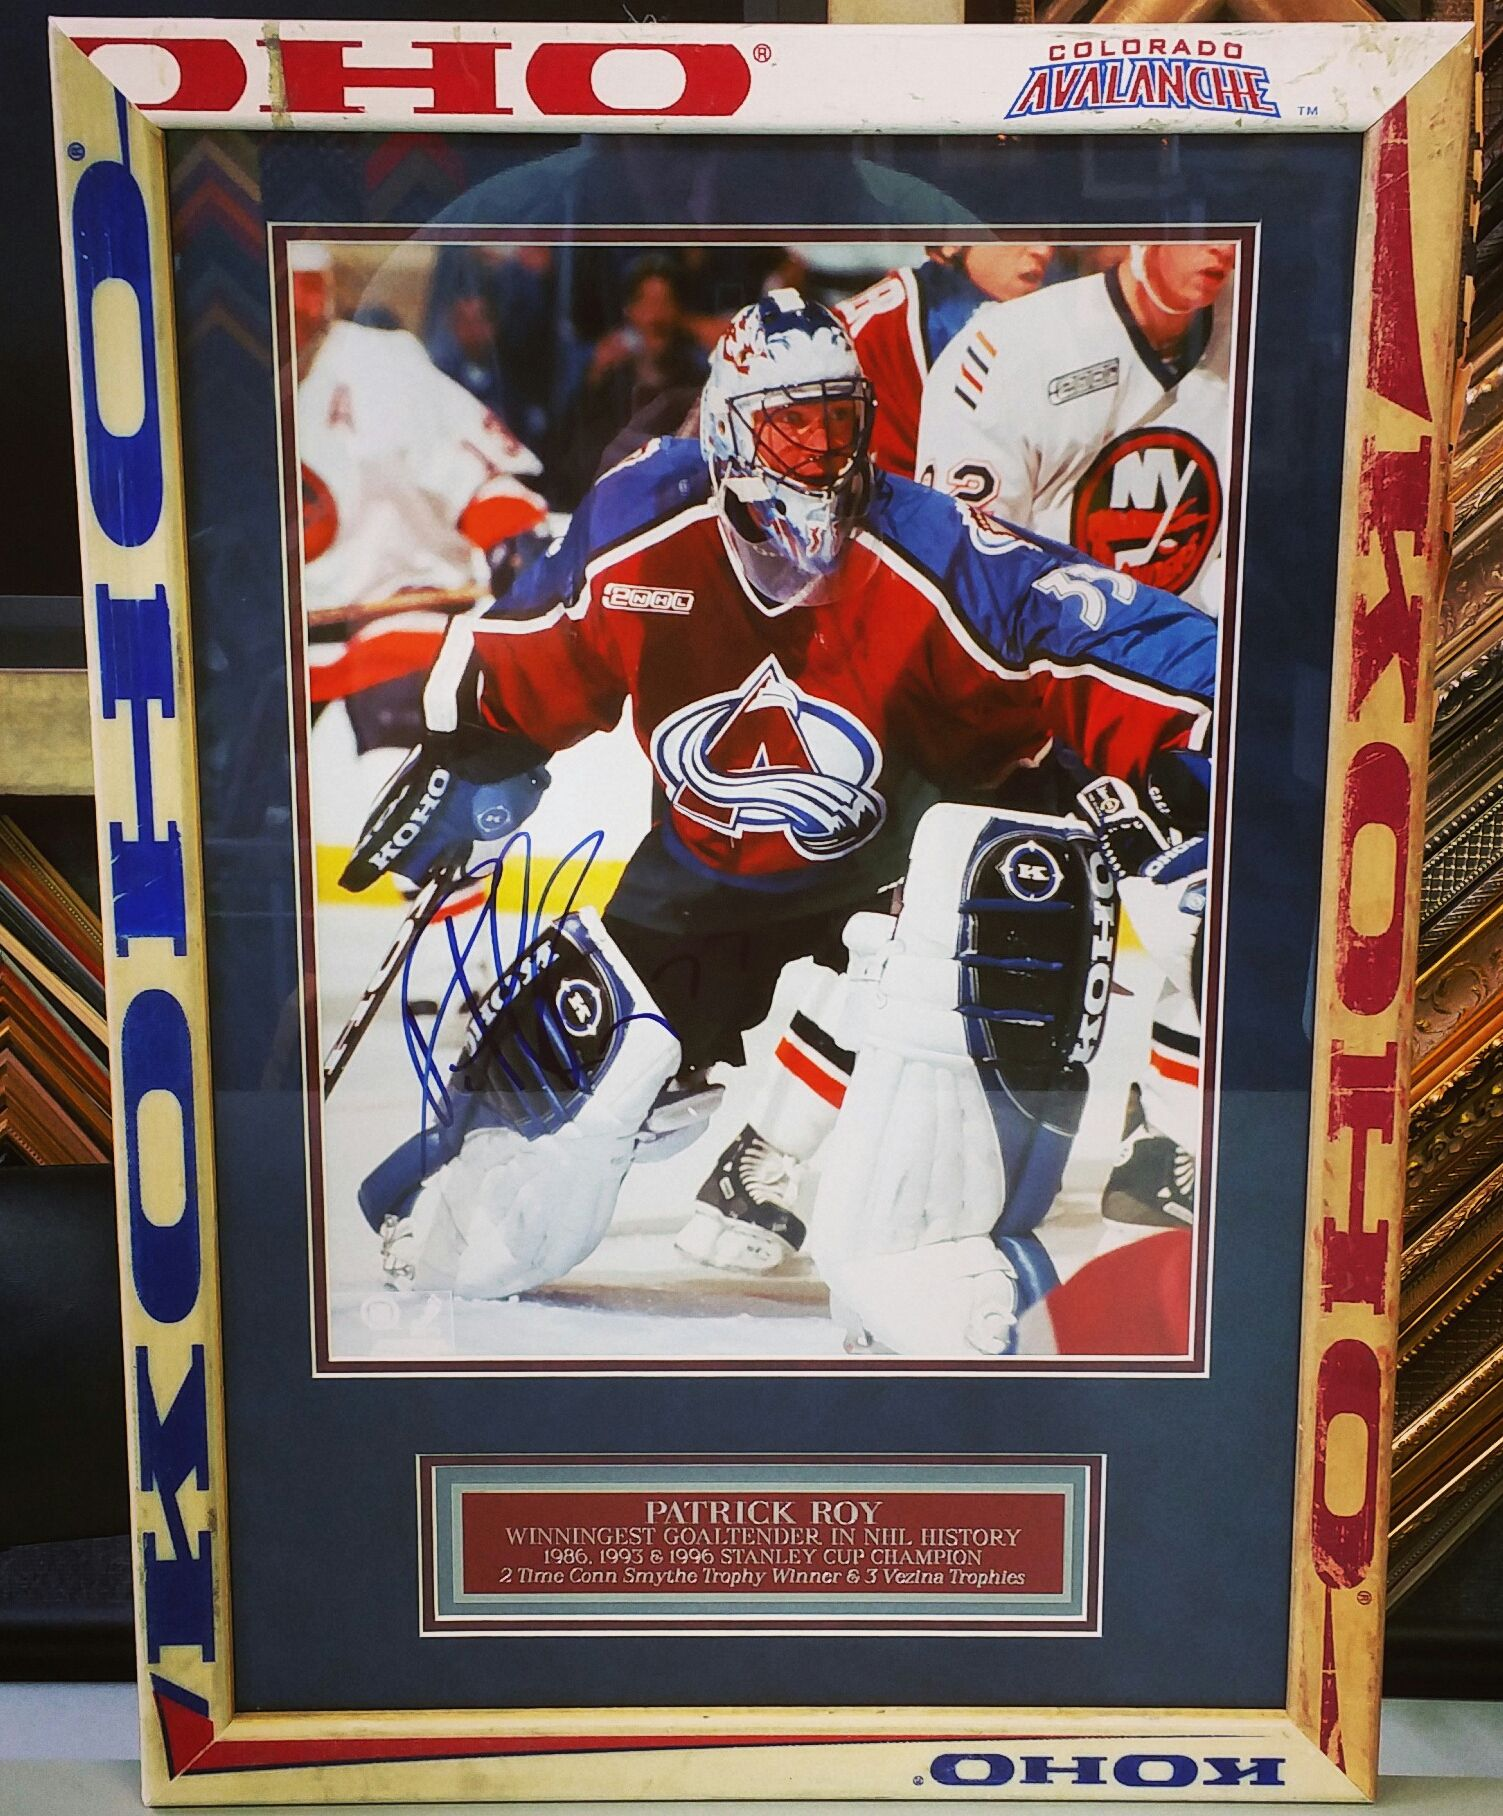 Custom Framed Patrick Roy Photograph In A Hockey Stick Frame For Sale Now At Fastframe Of Lodo Denver Colorad Framed Jersey Hockey Stick Colorado Avalanche